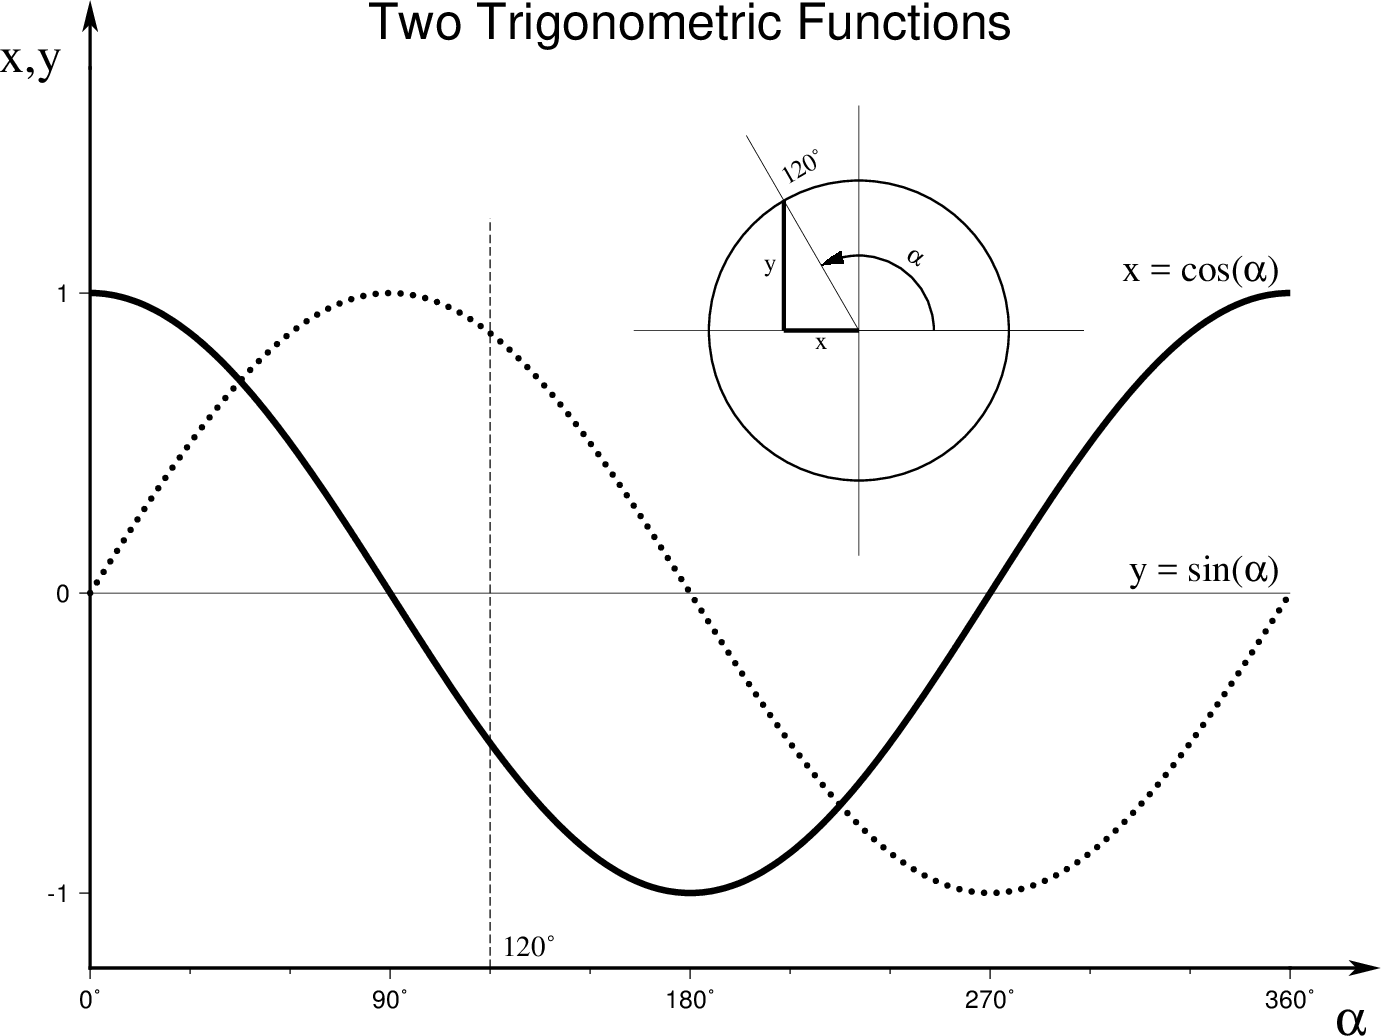 (30) Trigonometric functions plotted in graph mode — GMT 5